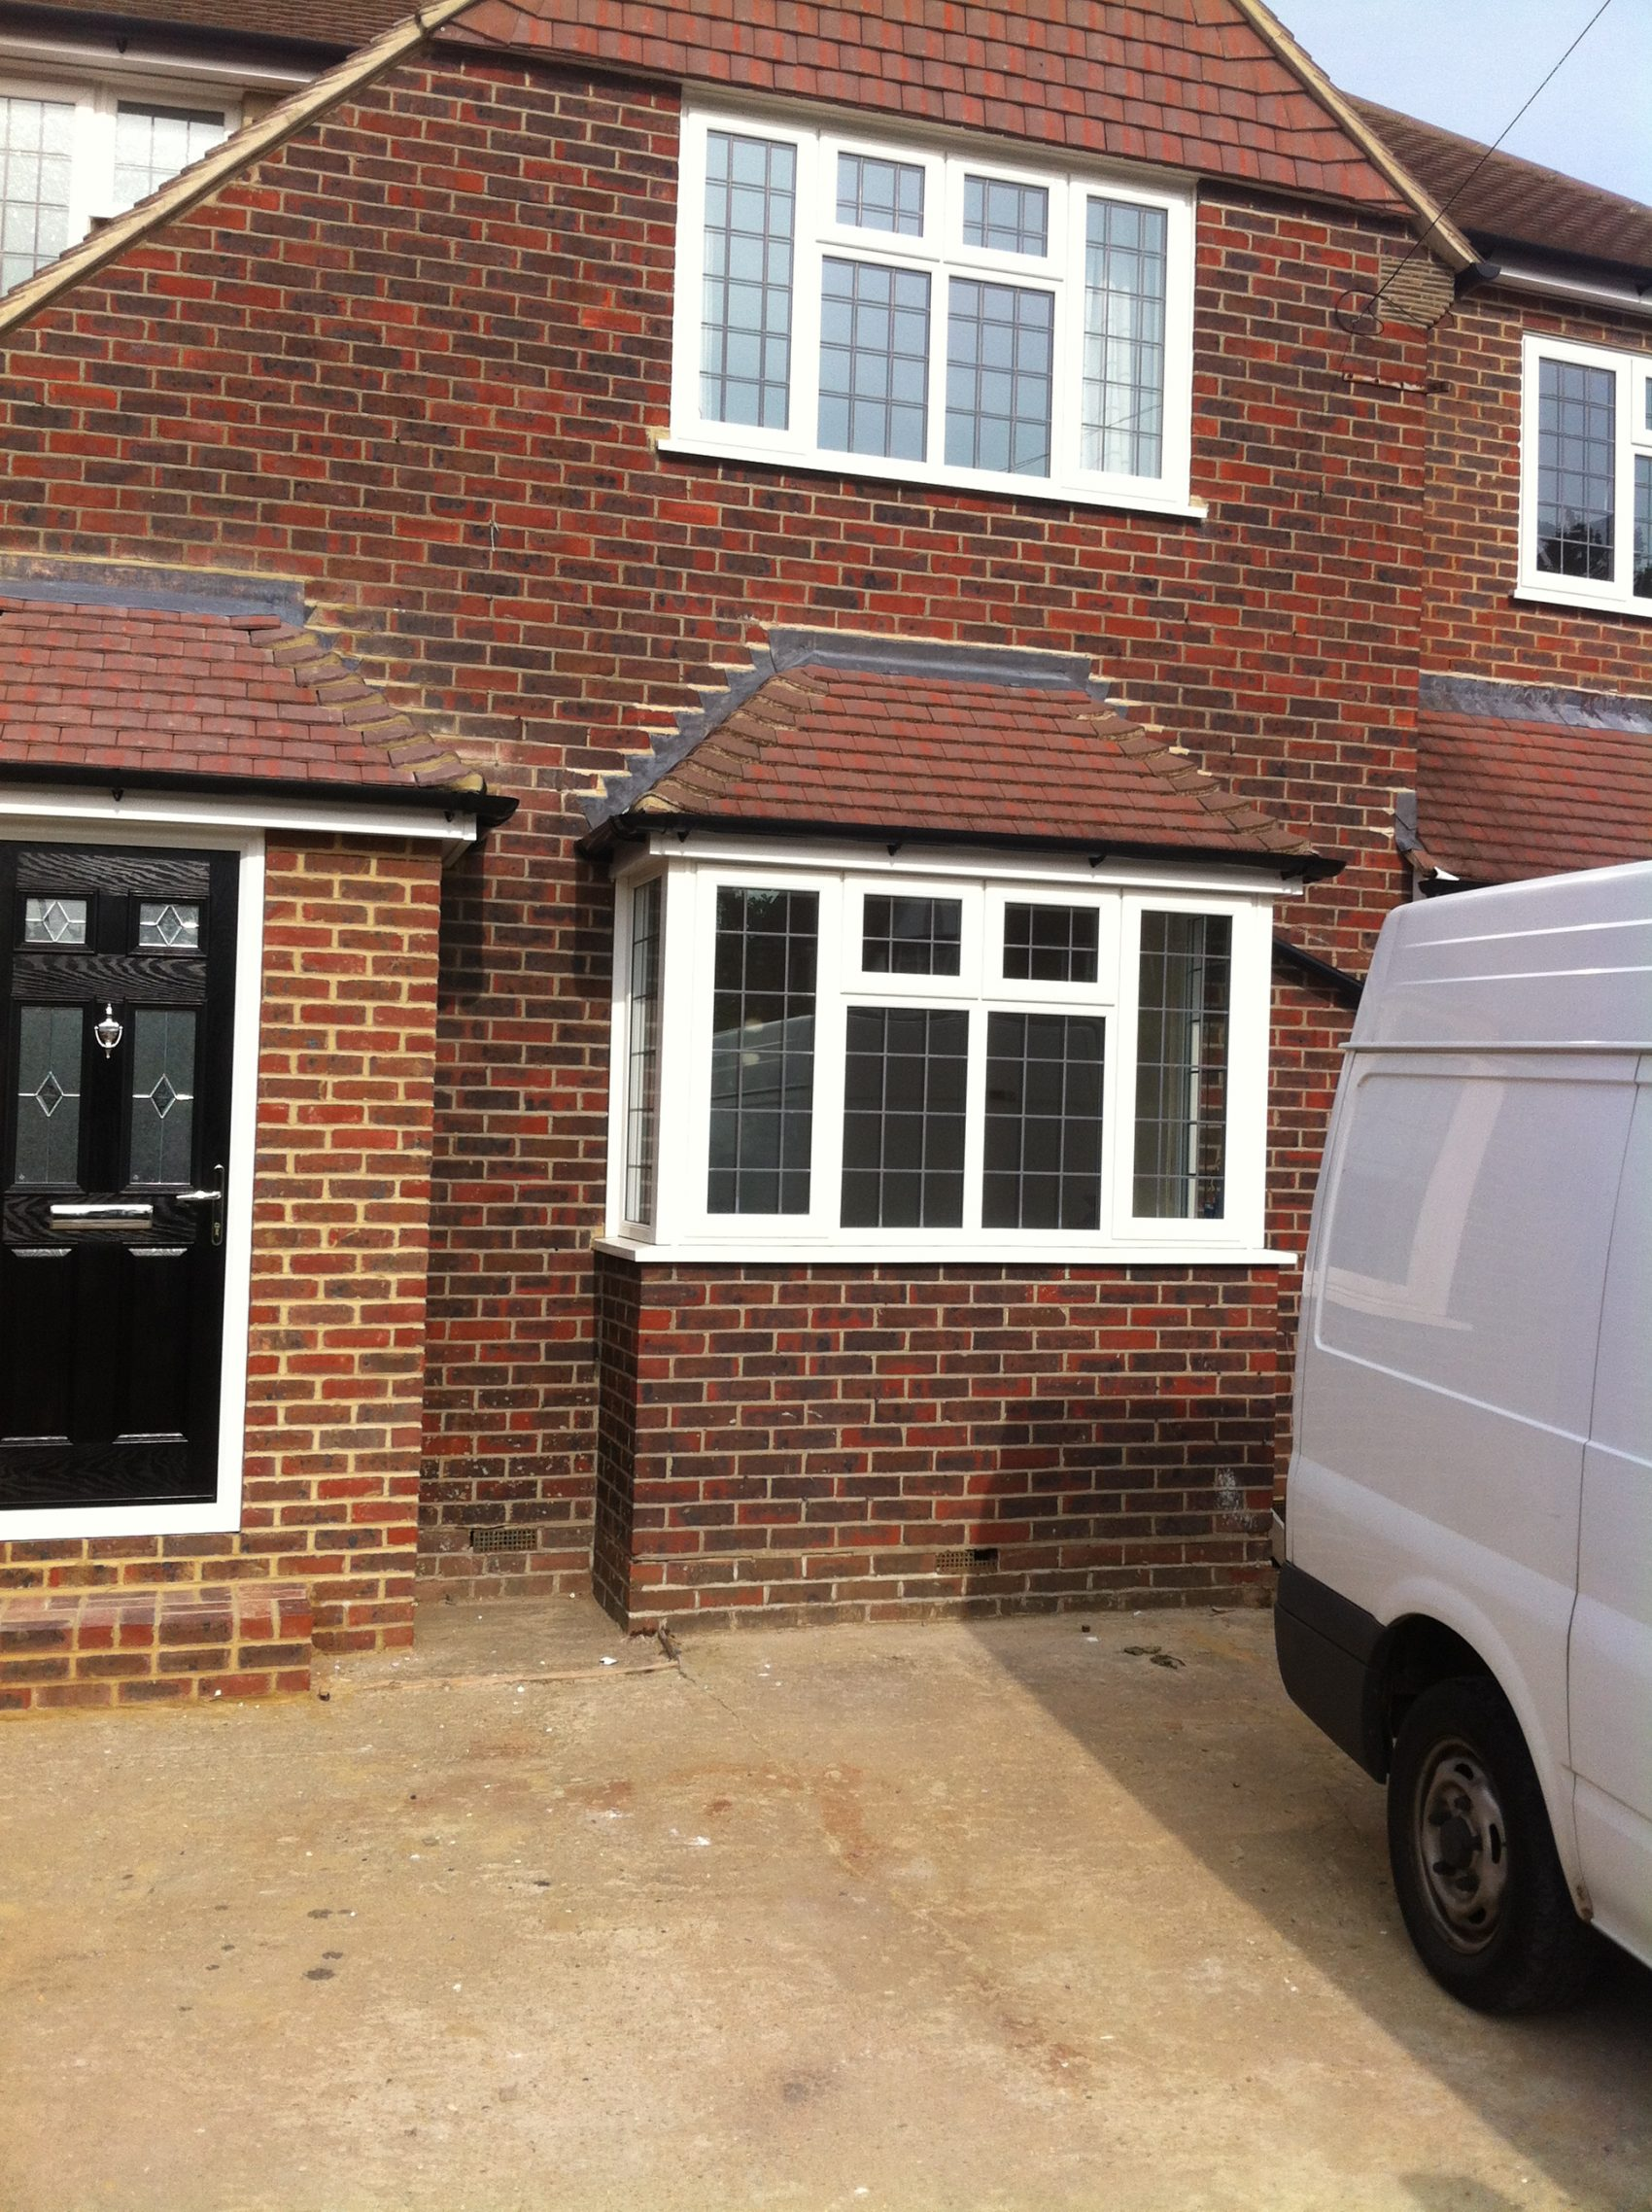 Twickenham double glazing replacement windows in whitton for Double glazing window repairs